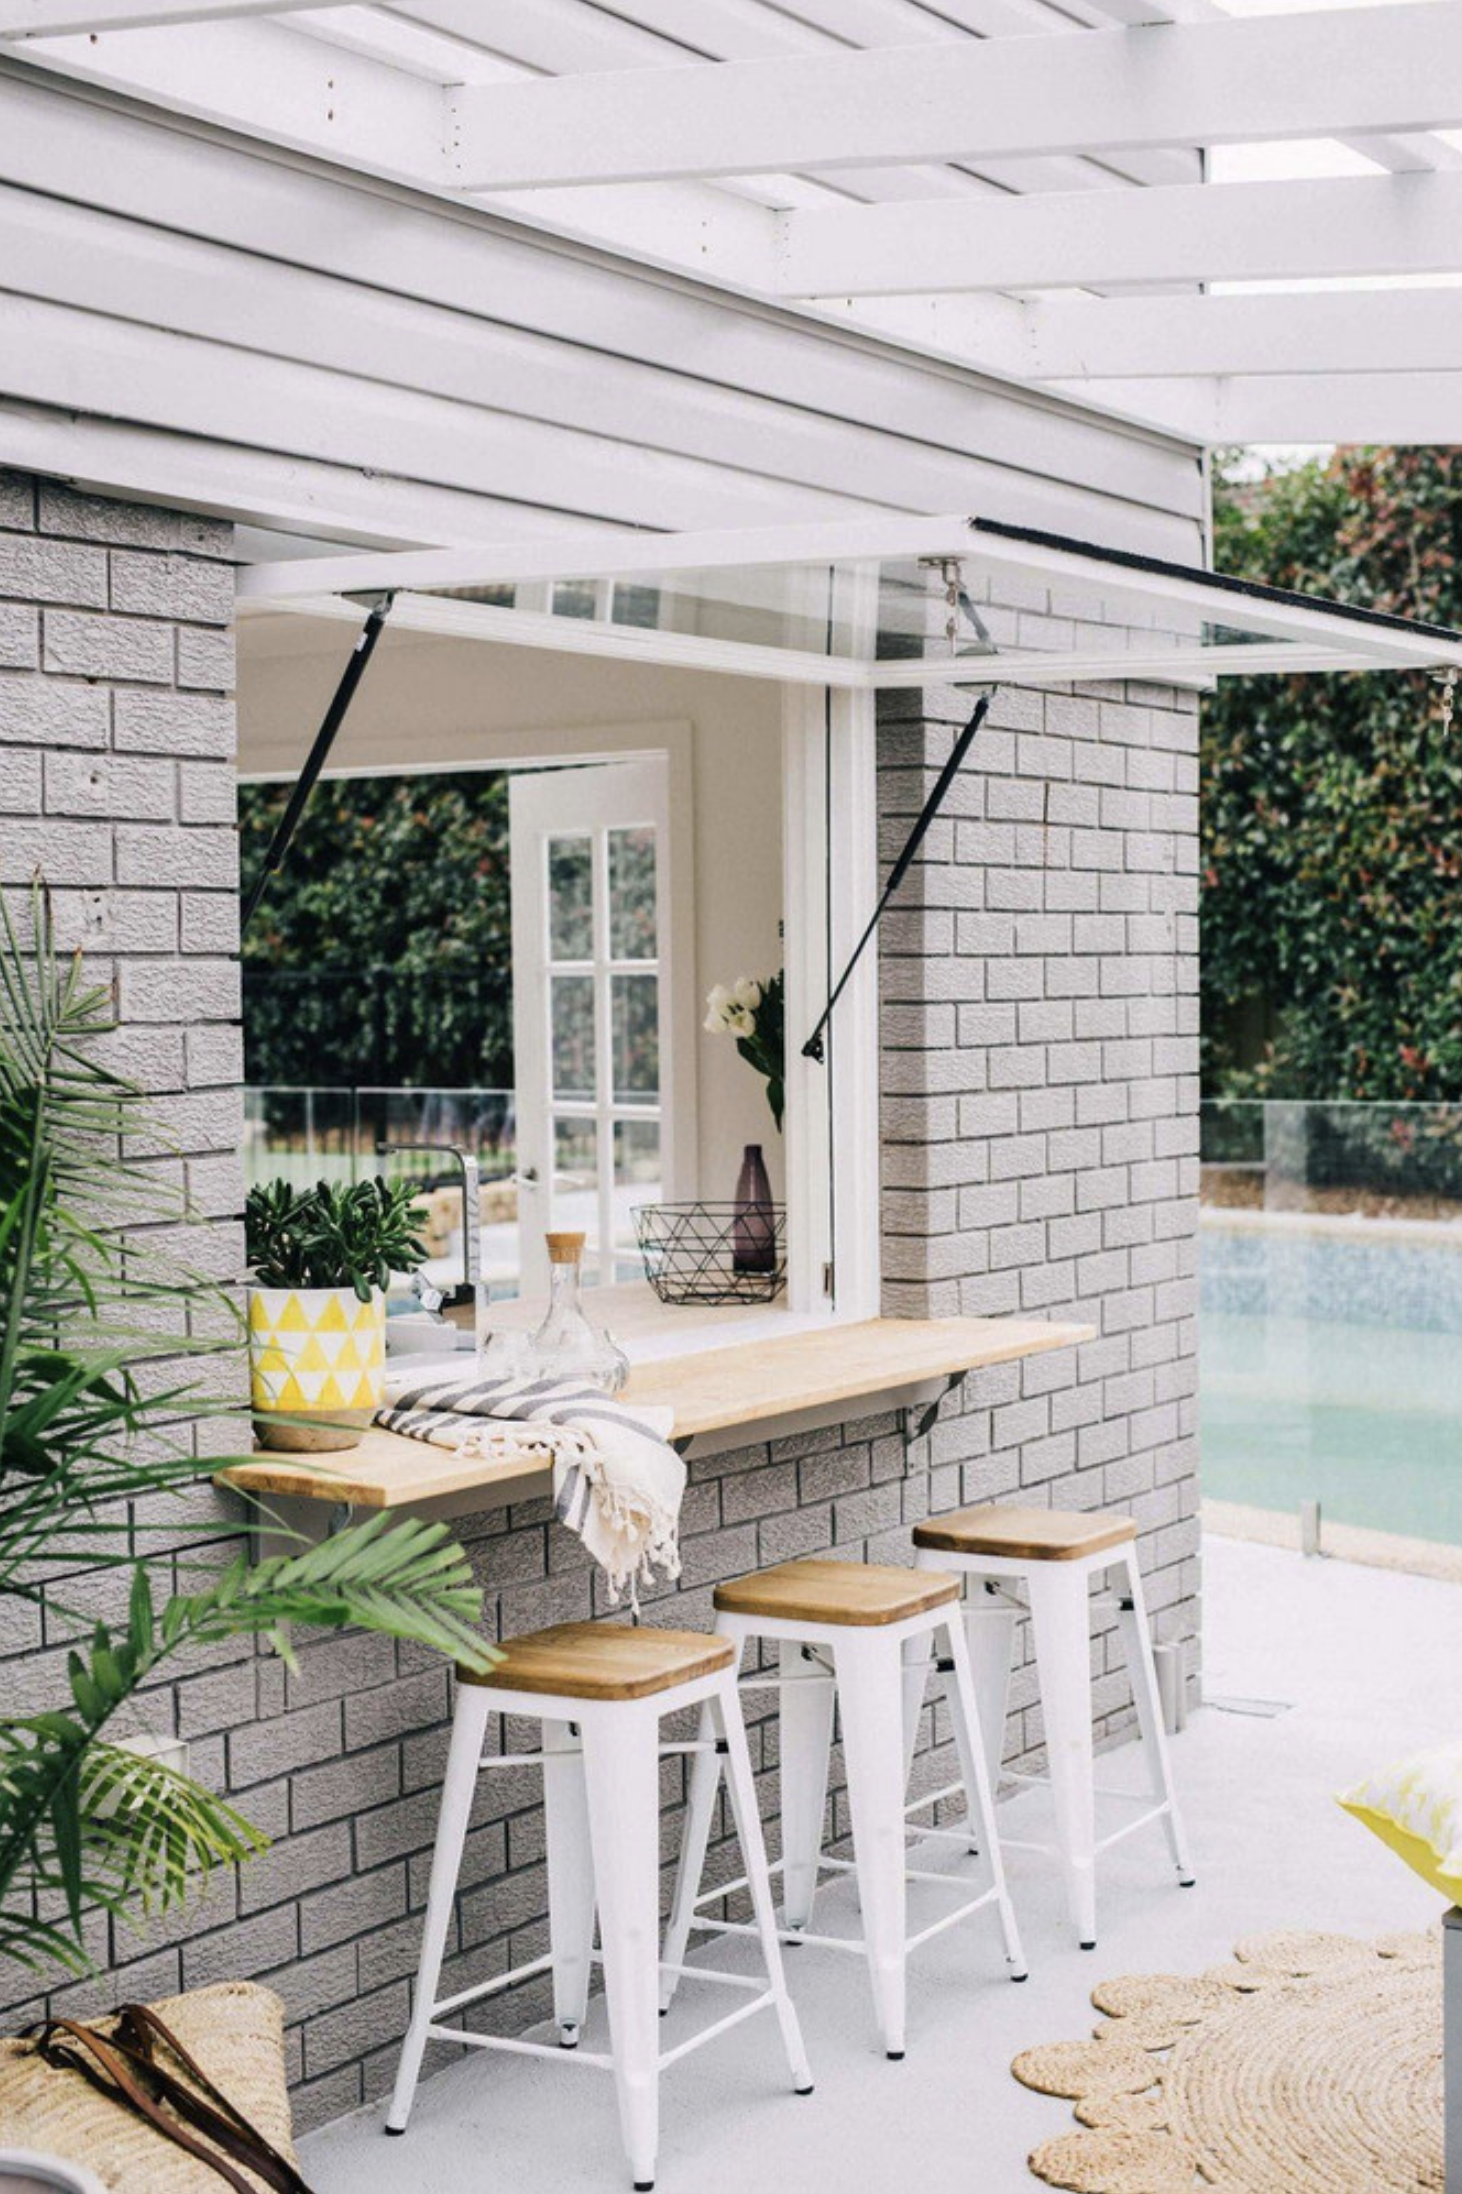 Inspiring Outdoor Spaces Our Favorite Sale Picks The Identite Collective Inspiring Outdoor Sp In 2020 Pool House Decor Inspiring Outdoor Spaces Patio Inspiration